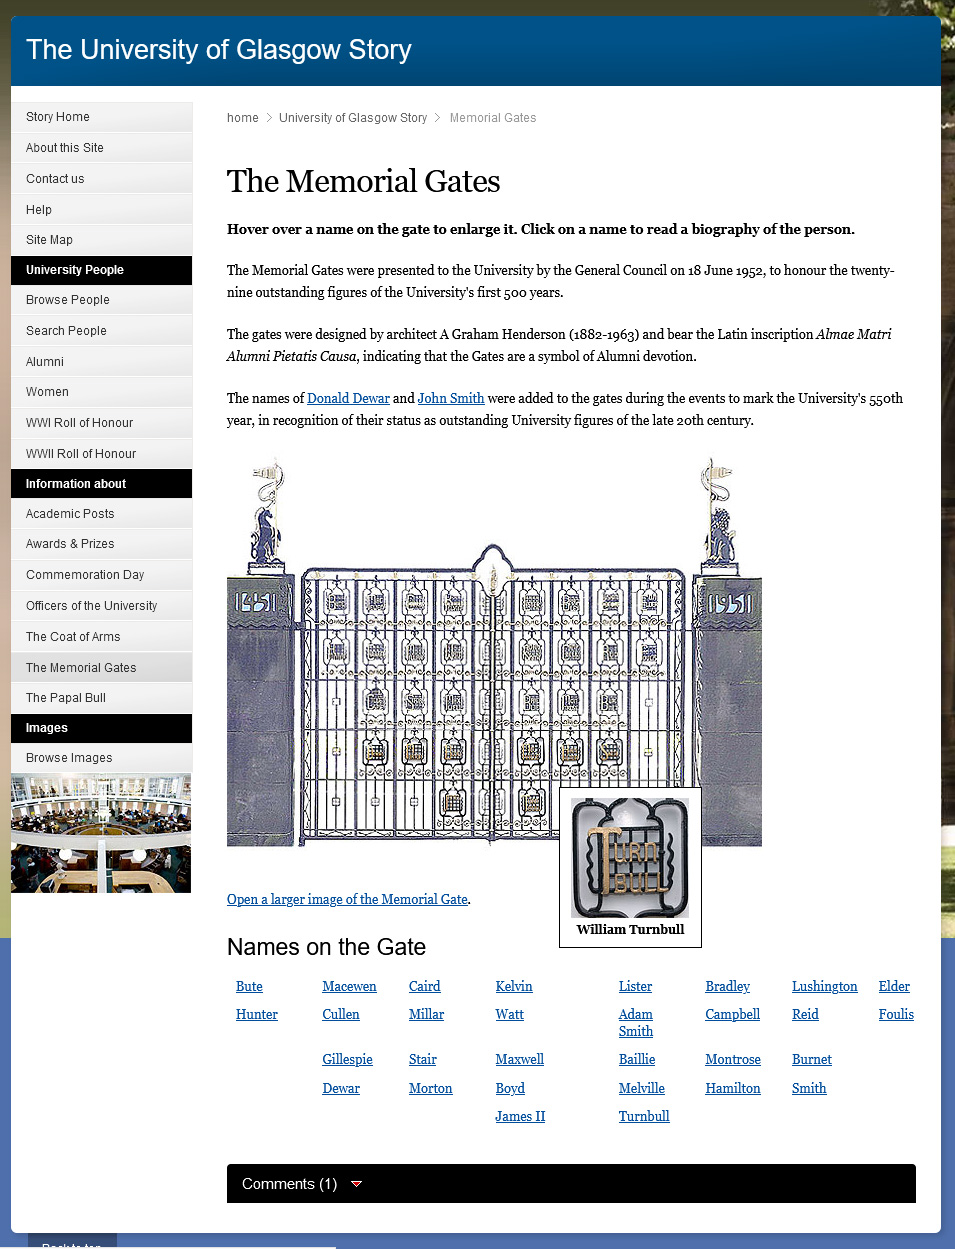 The interactive Memorial Gates page